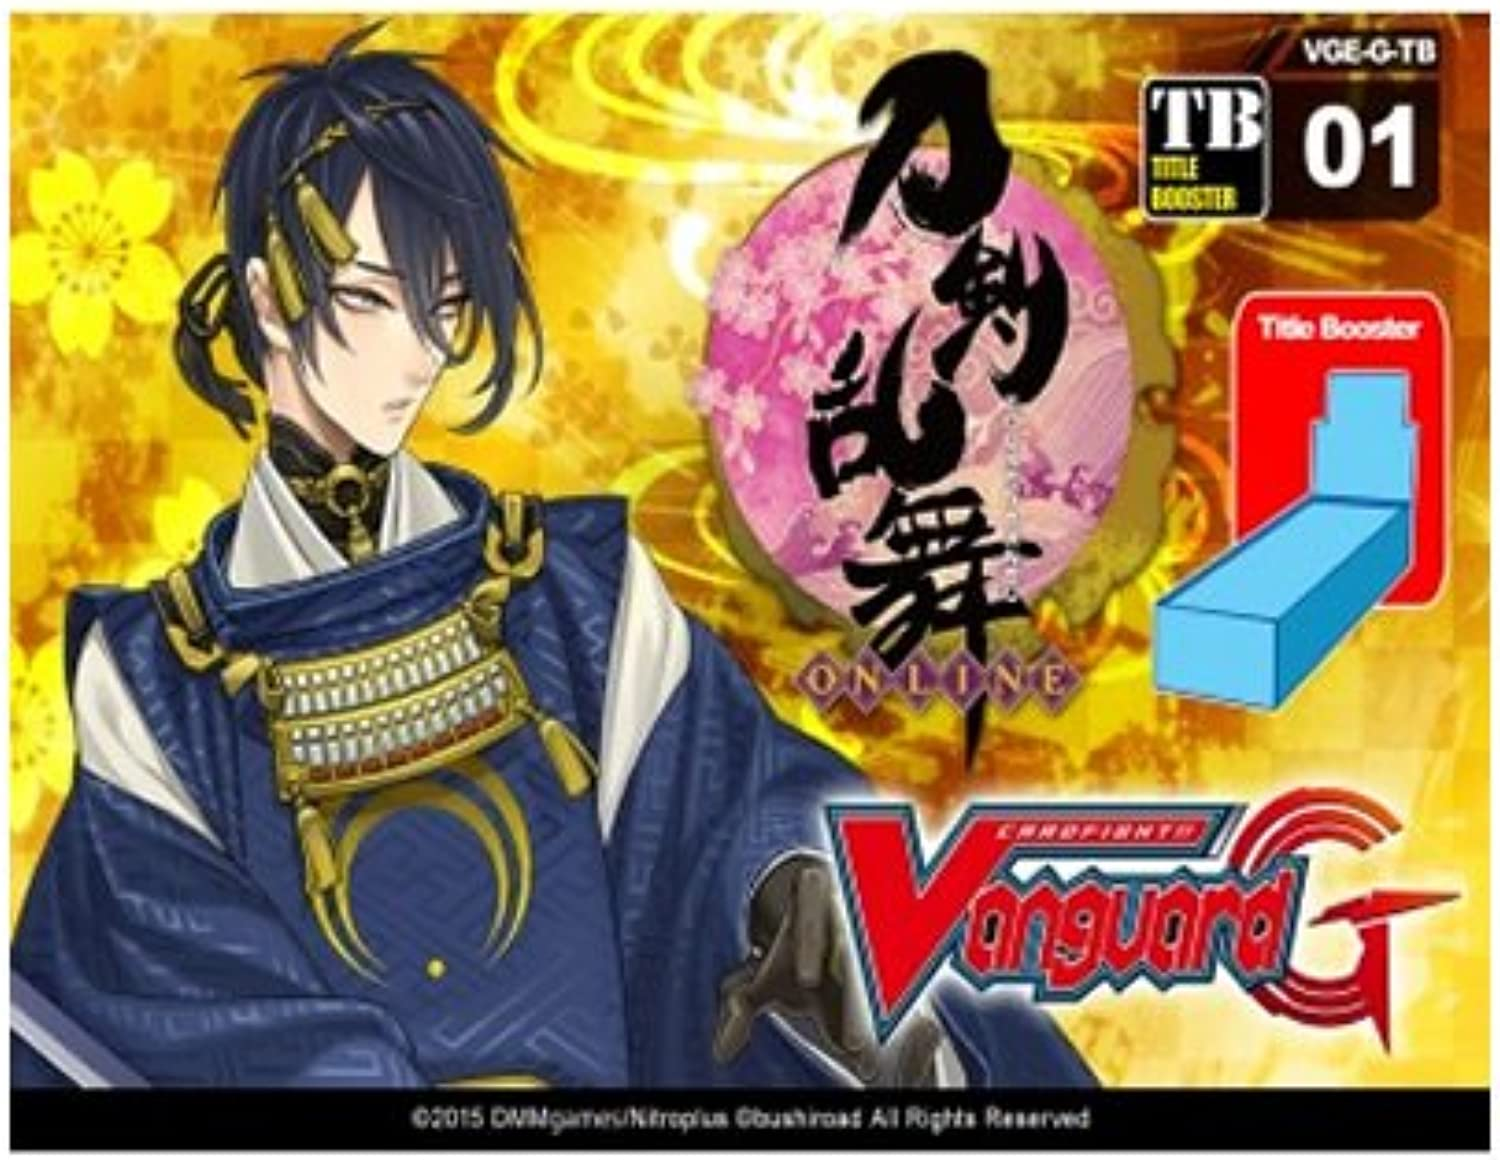 Cardfight Vanguard Clan Booster Touken Ranbu VGE-G-TB01